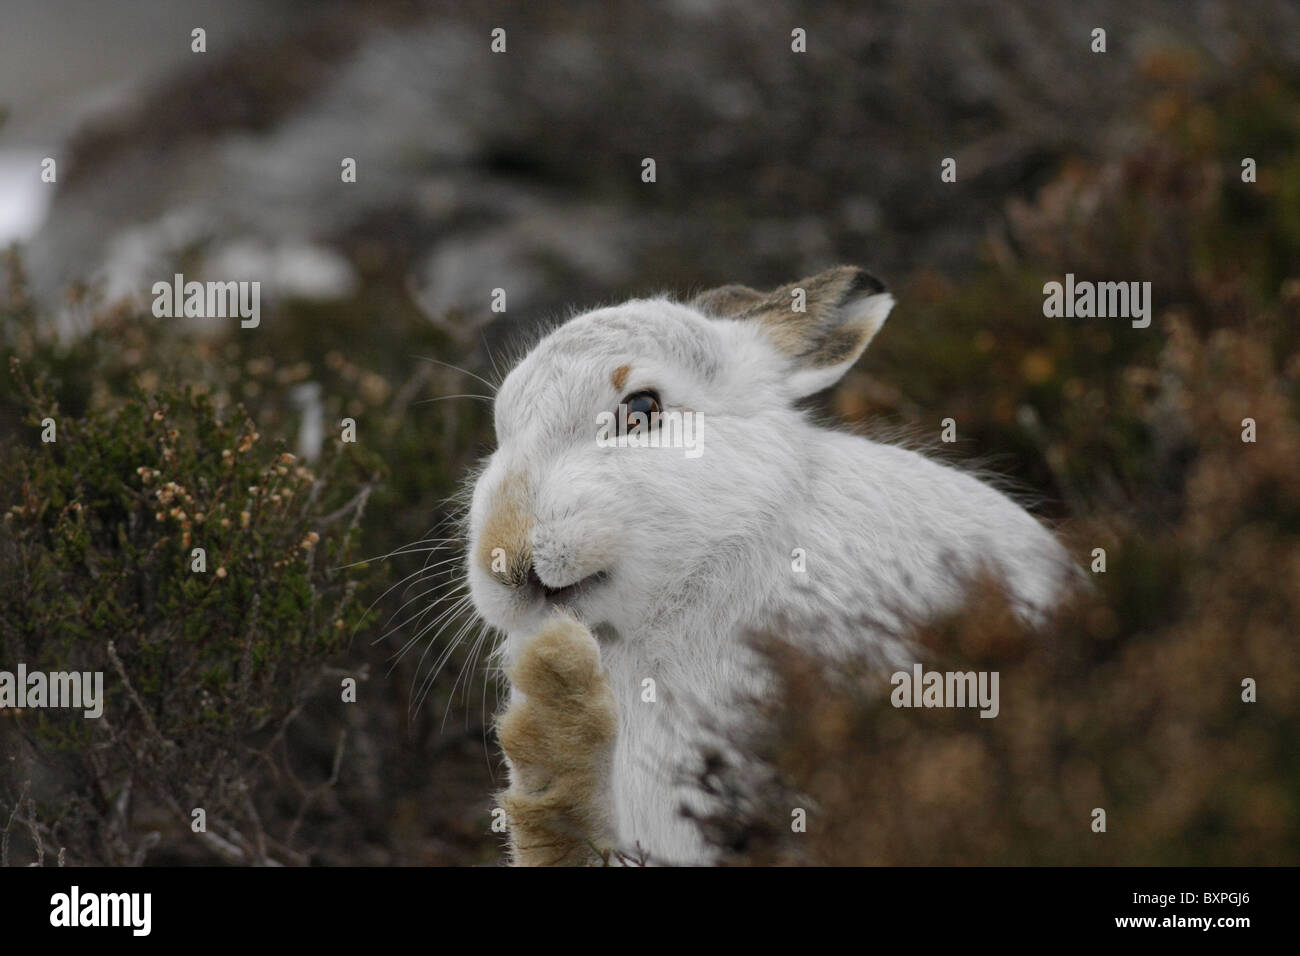 Mountain Hare (Lepus timidus) in white winter pelage grooming, Monadhliath Mountains, Highlands, Scotland, UK - Stock Image